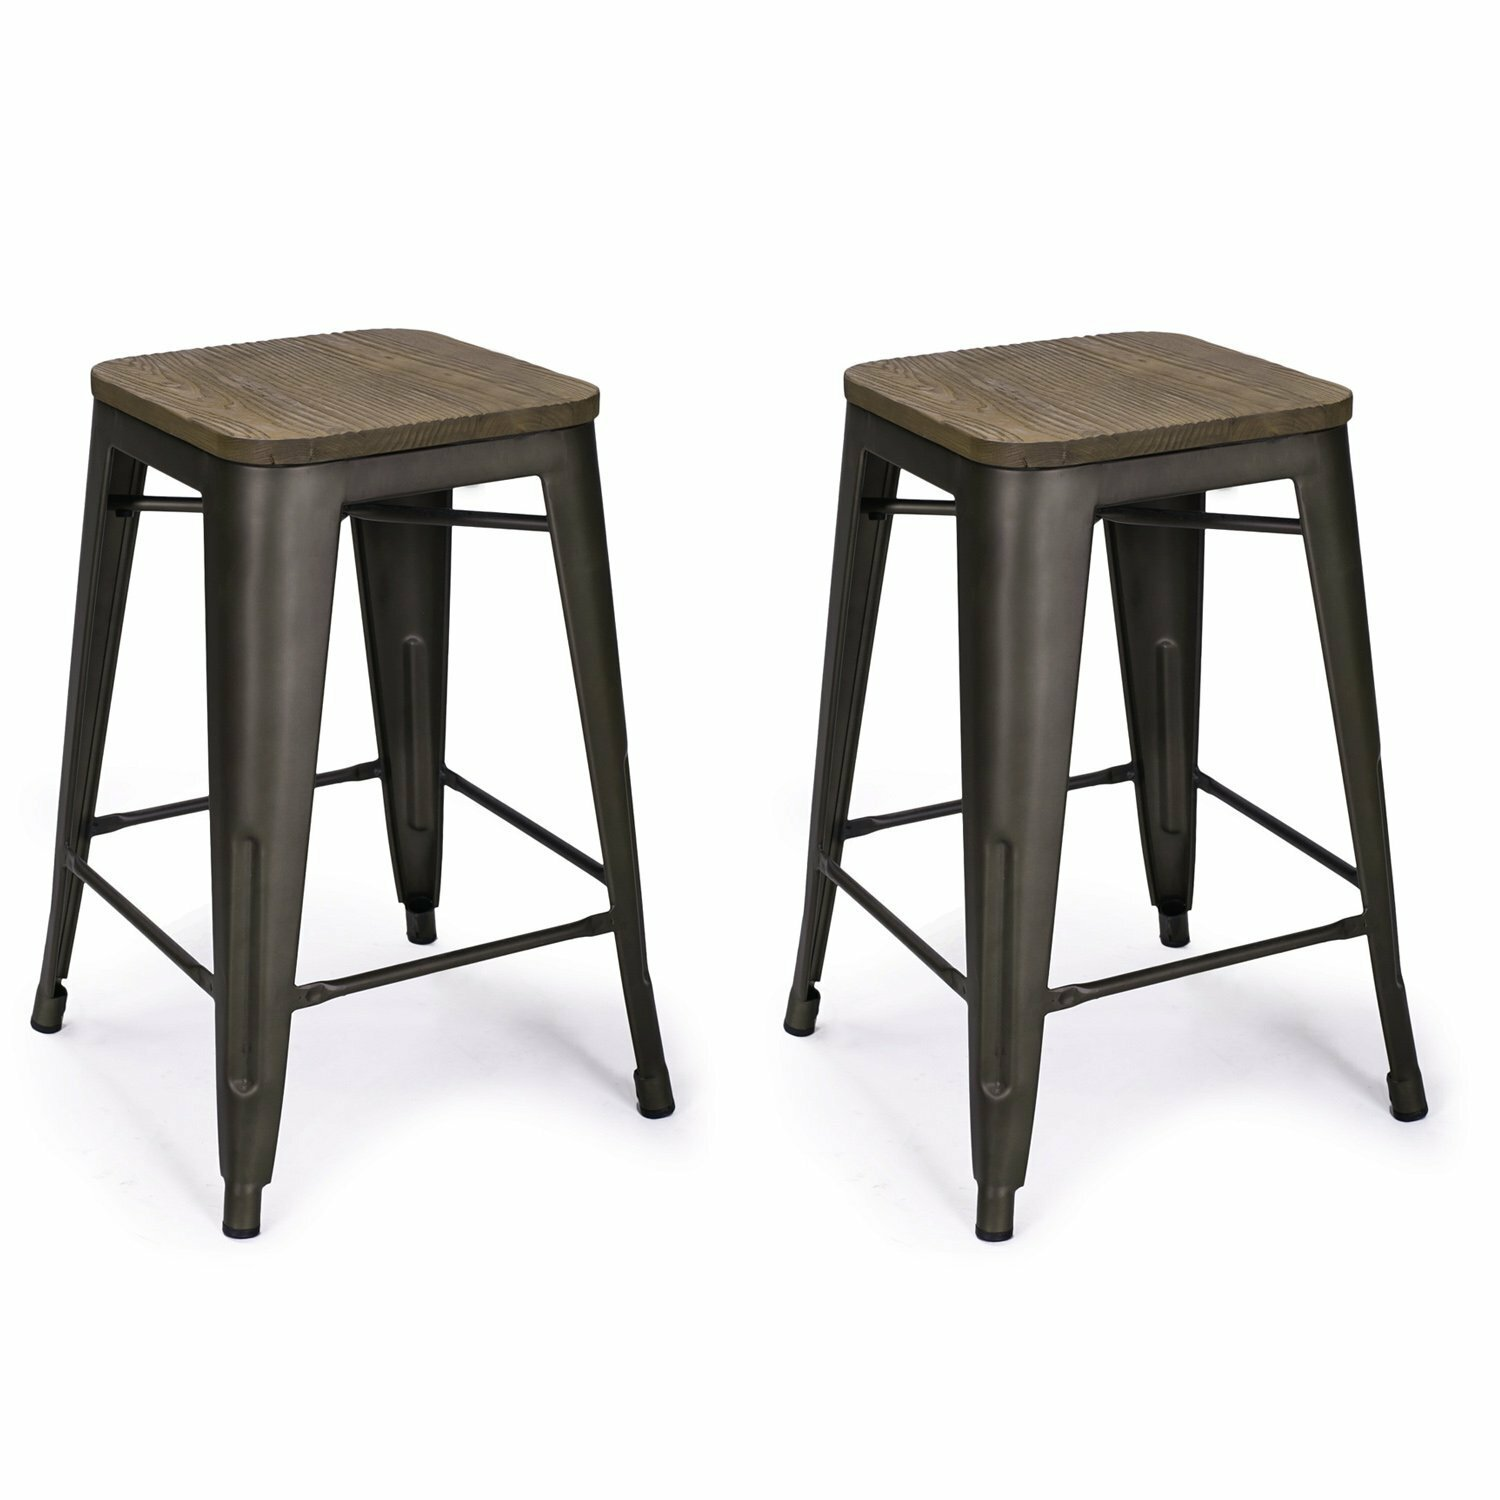 adecotrading 24 bar stool reviews wayfair